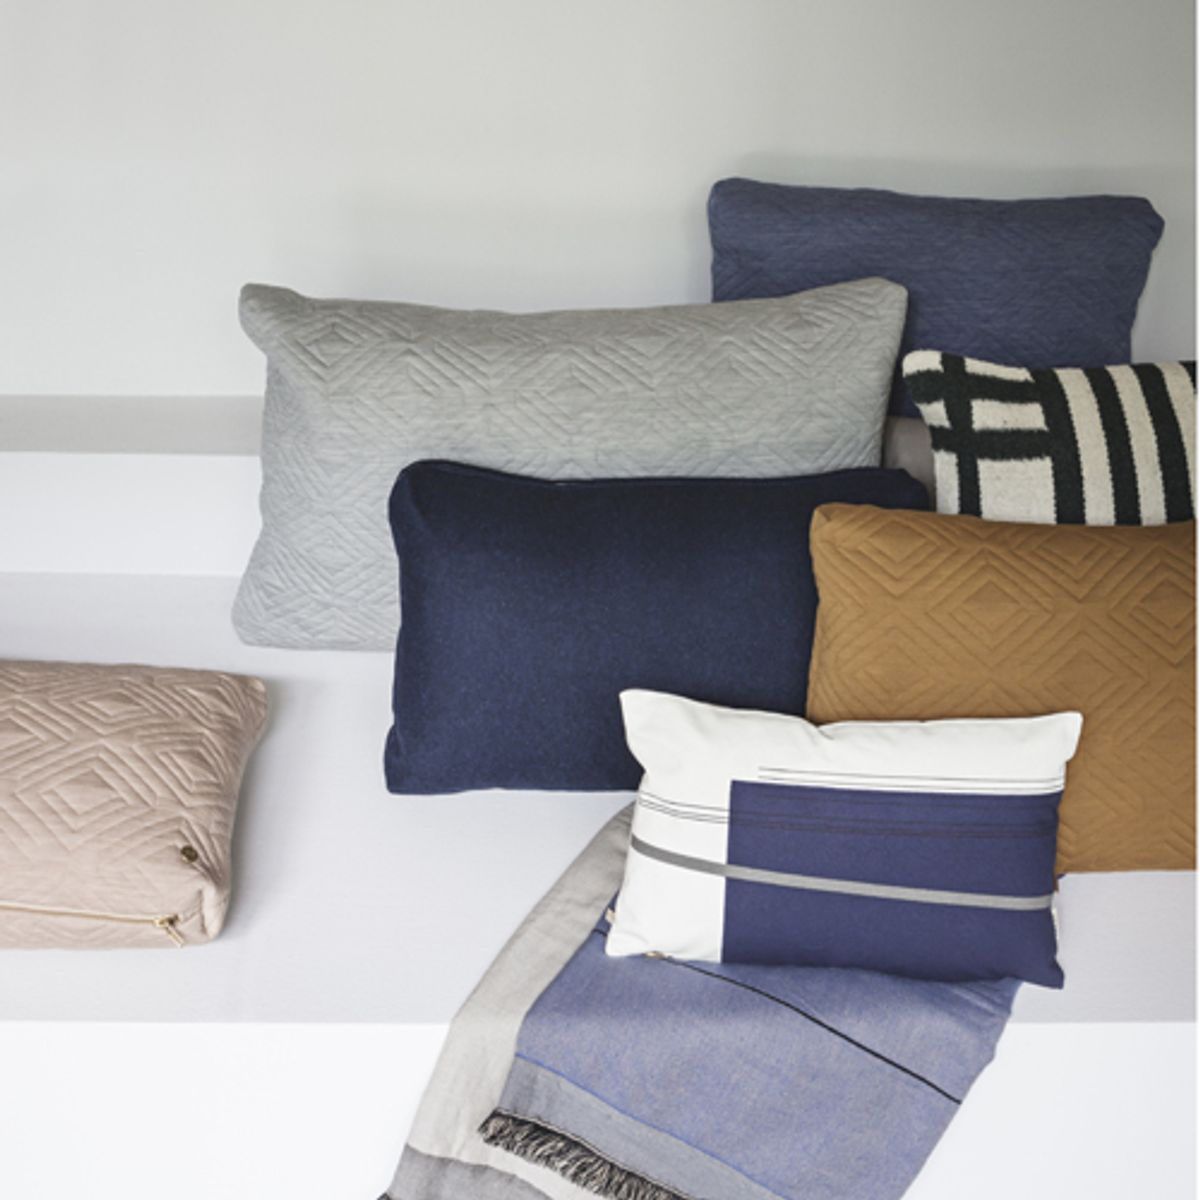 coussin en coton biologique motif bleu et gris ferm living decoclico. Black Bedroom Furniture Sets. Home Design Ideas